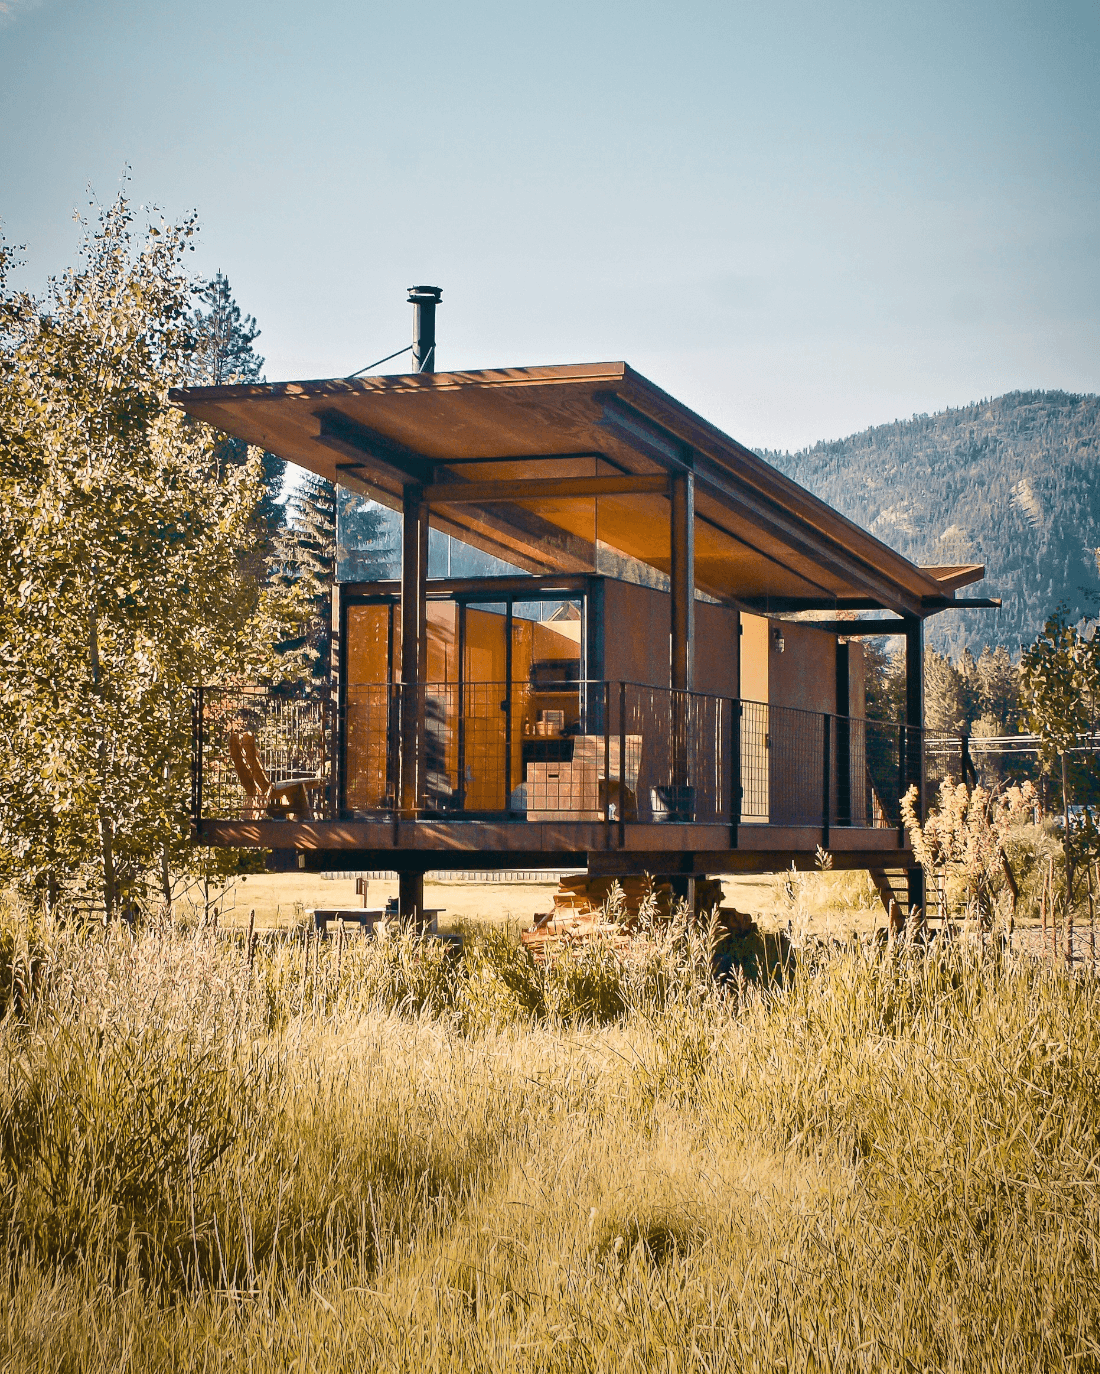 The Rolling Huts are unique tiny homes you can stay in just outside of Mazama.